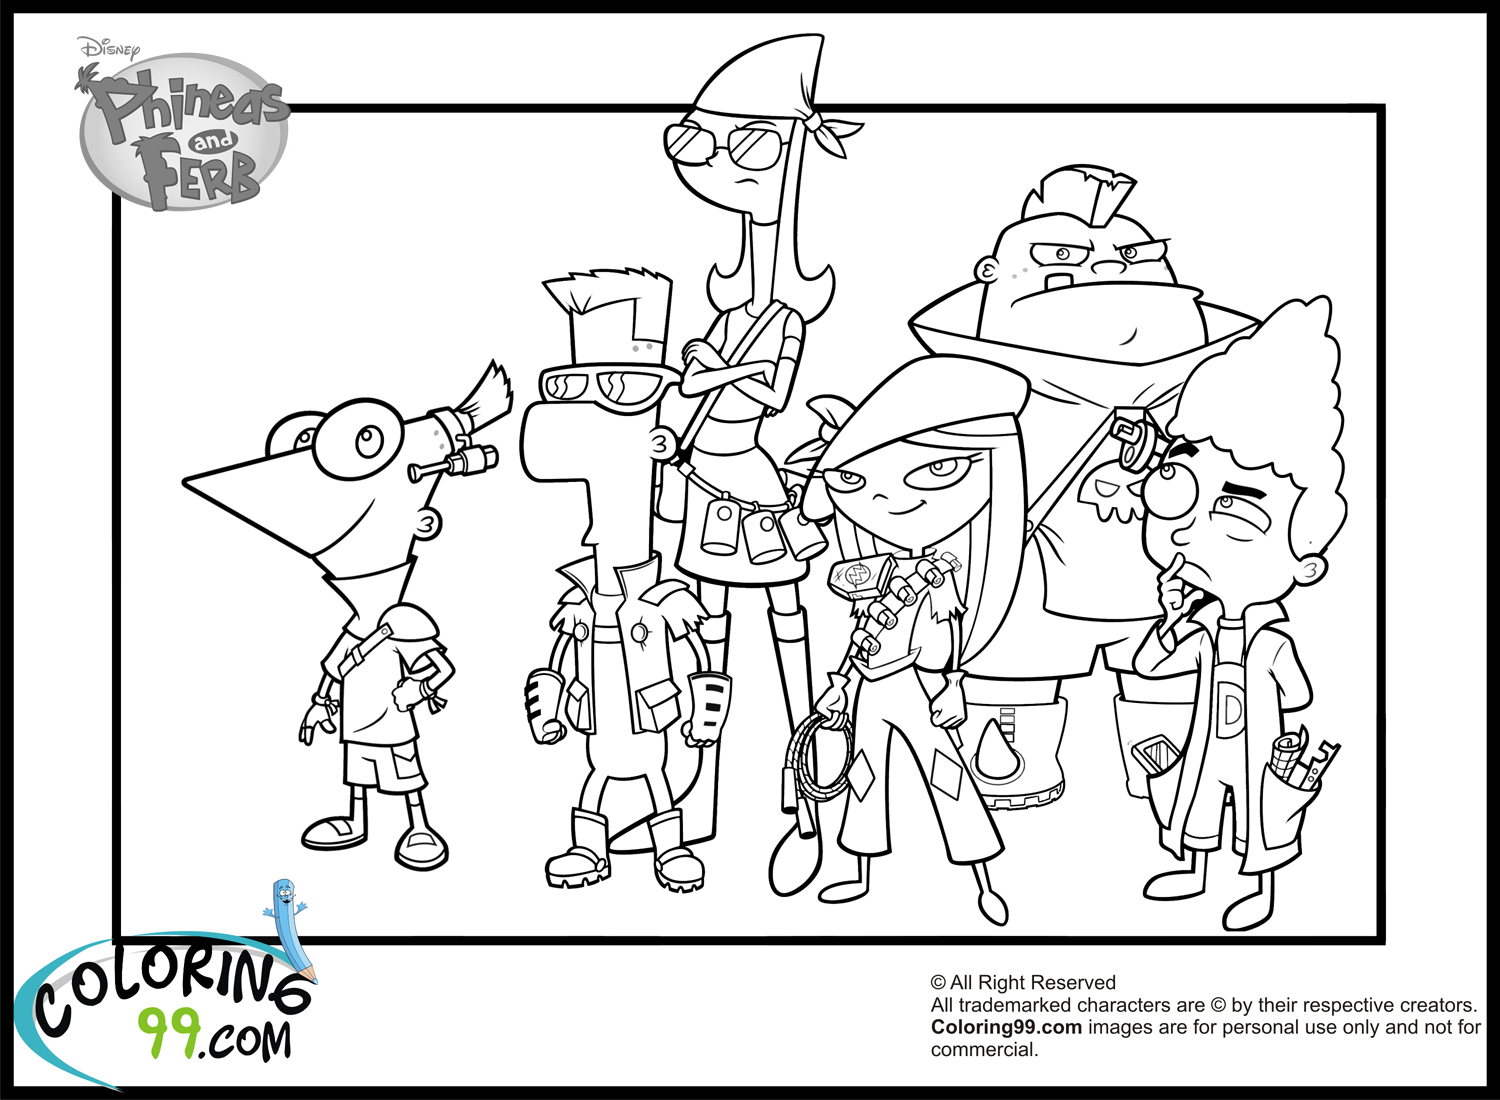 Phineas and Ferb Coloring Pages | Team colors